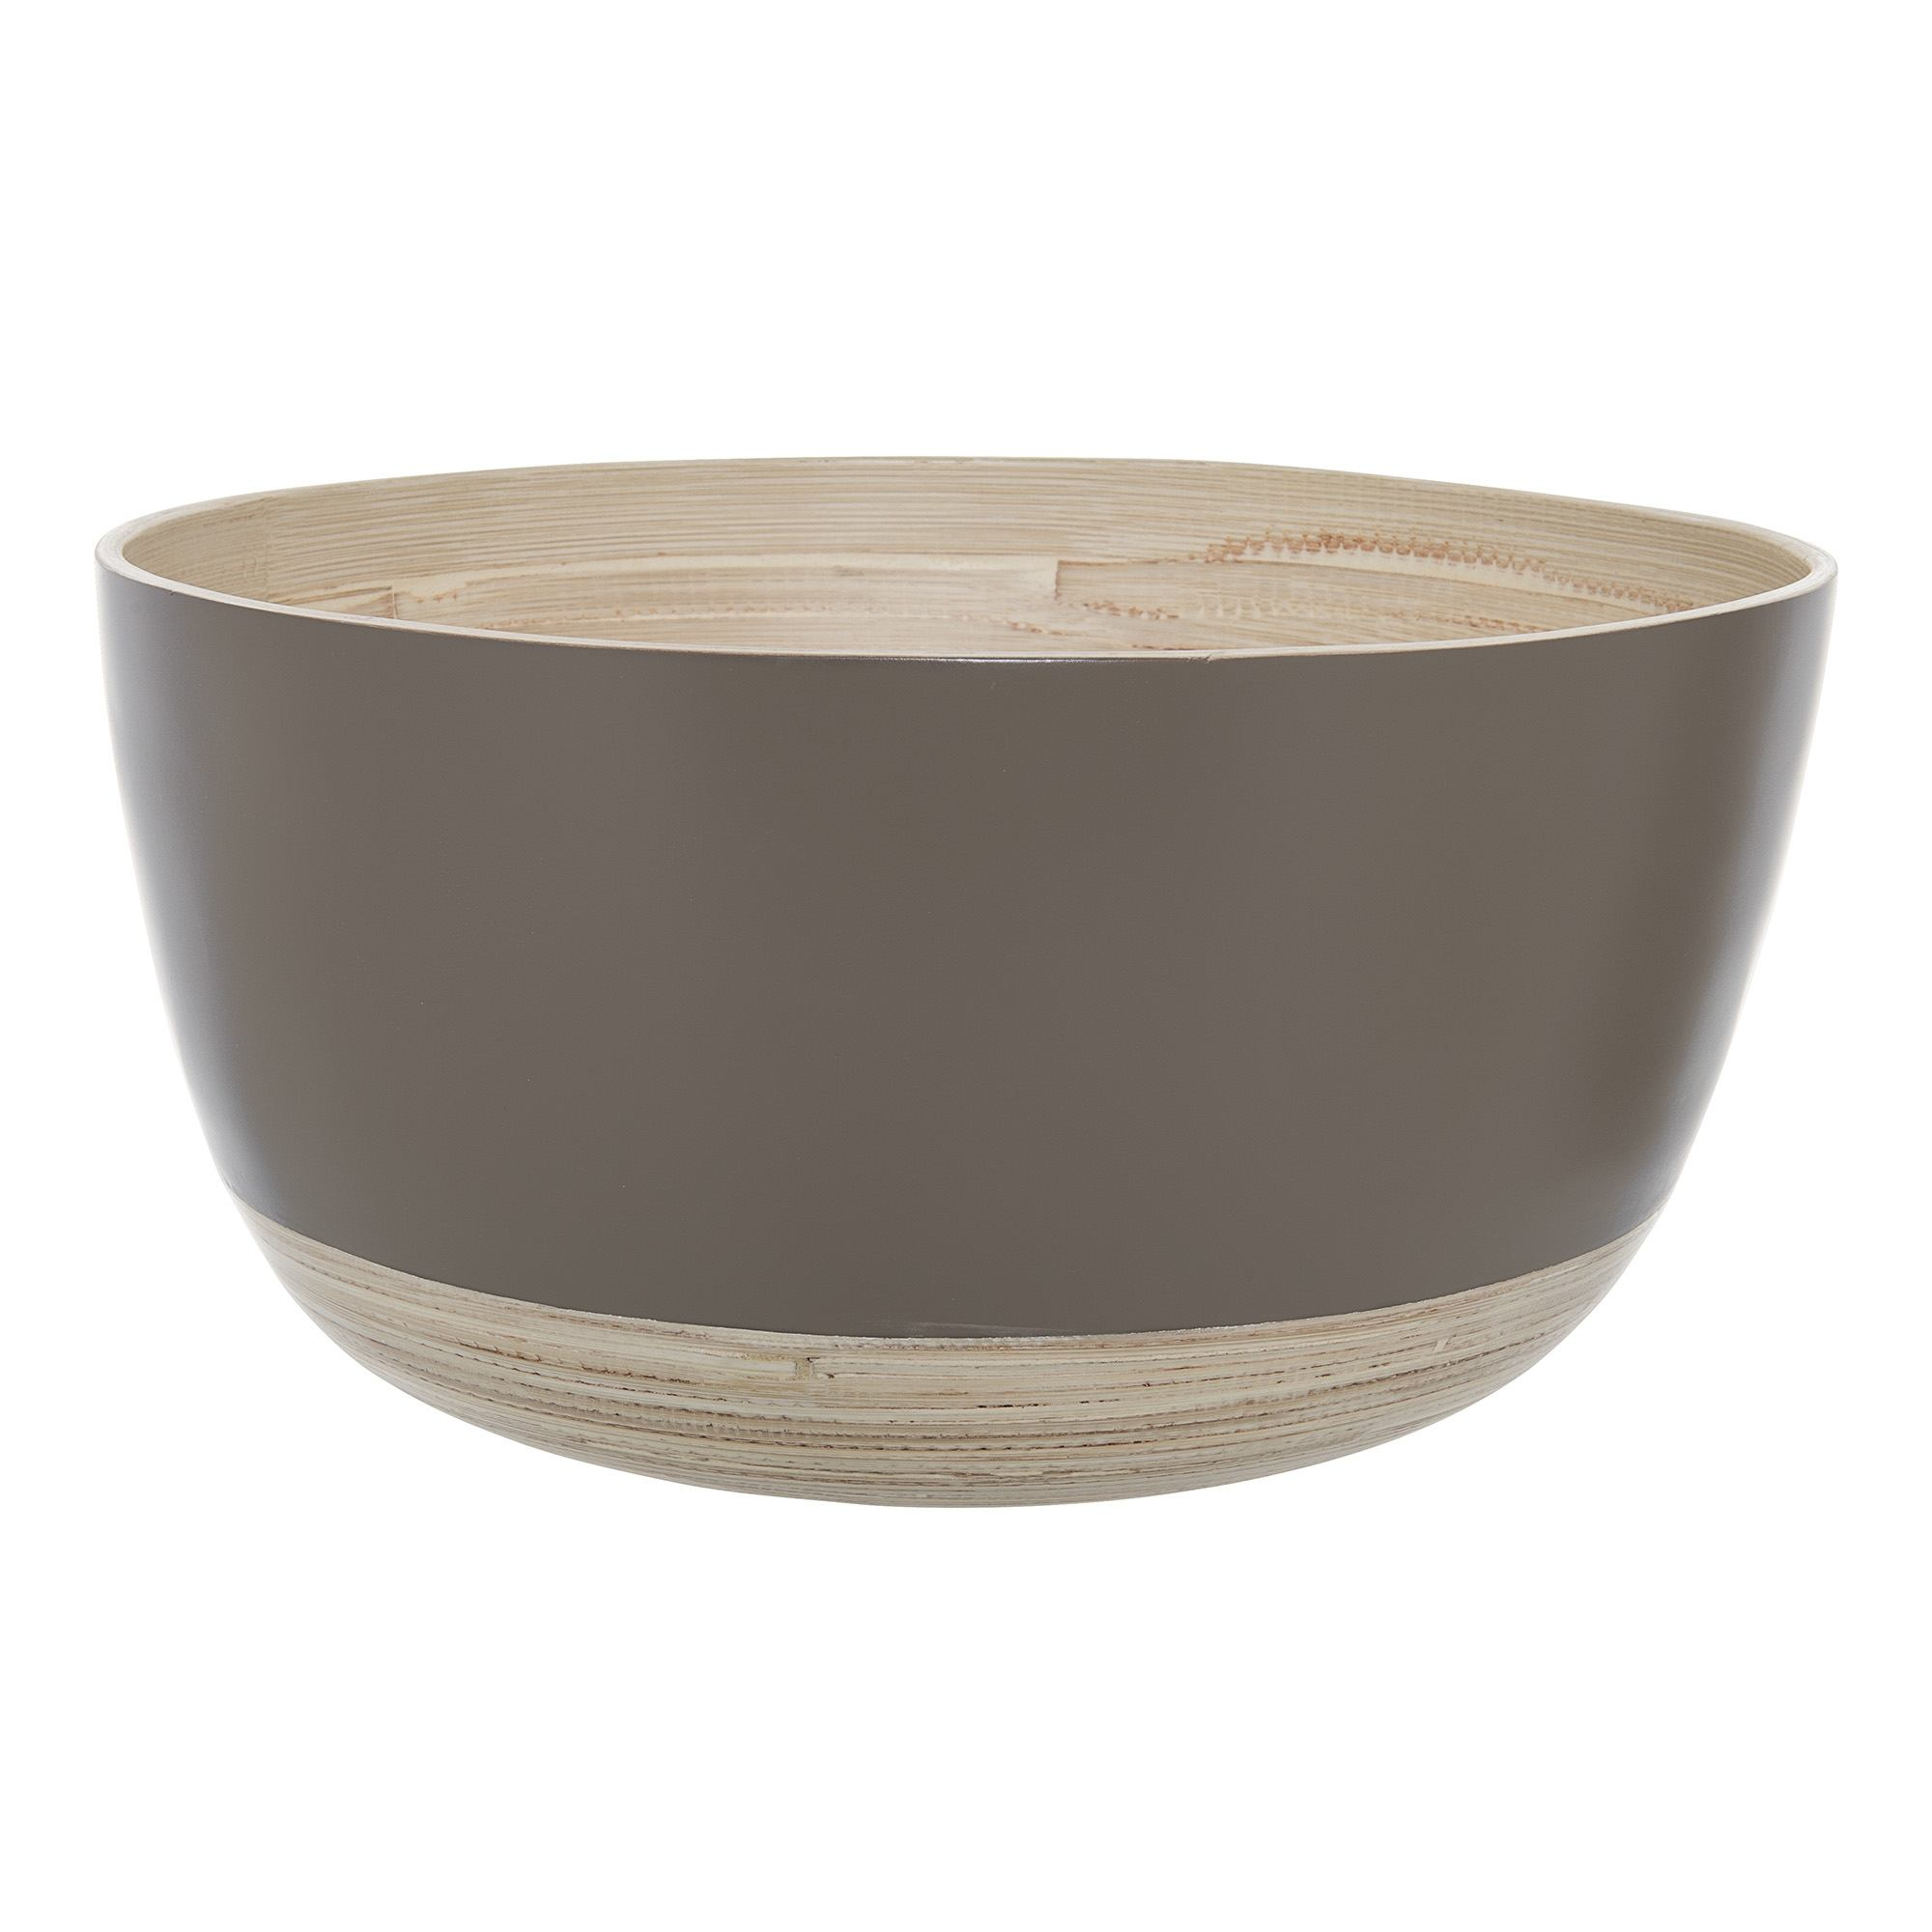 Image of   Serving bowl, brown, bamboo